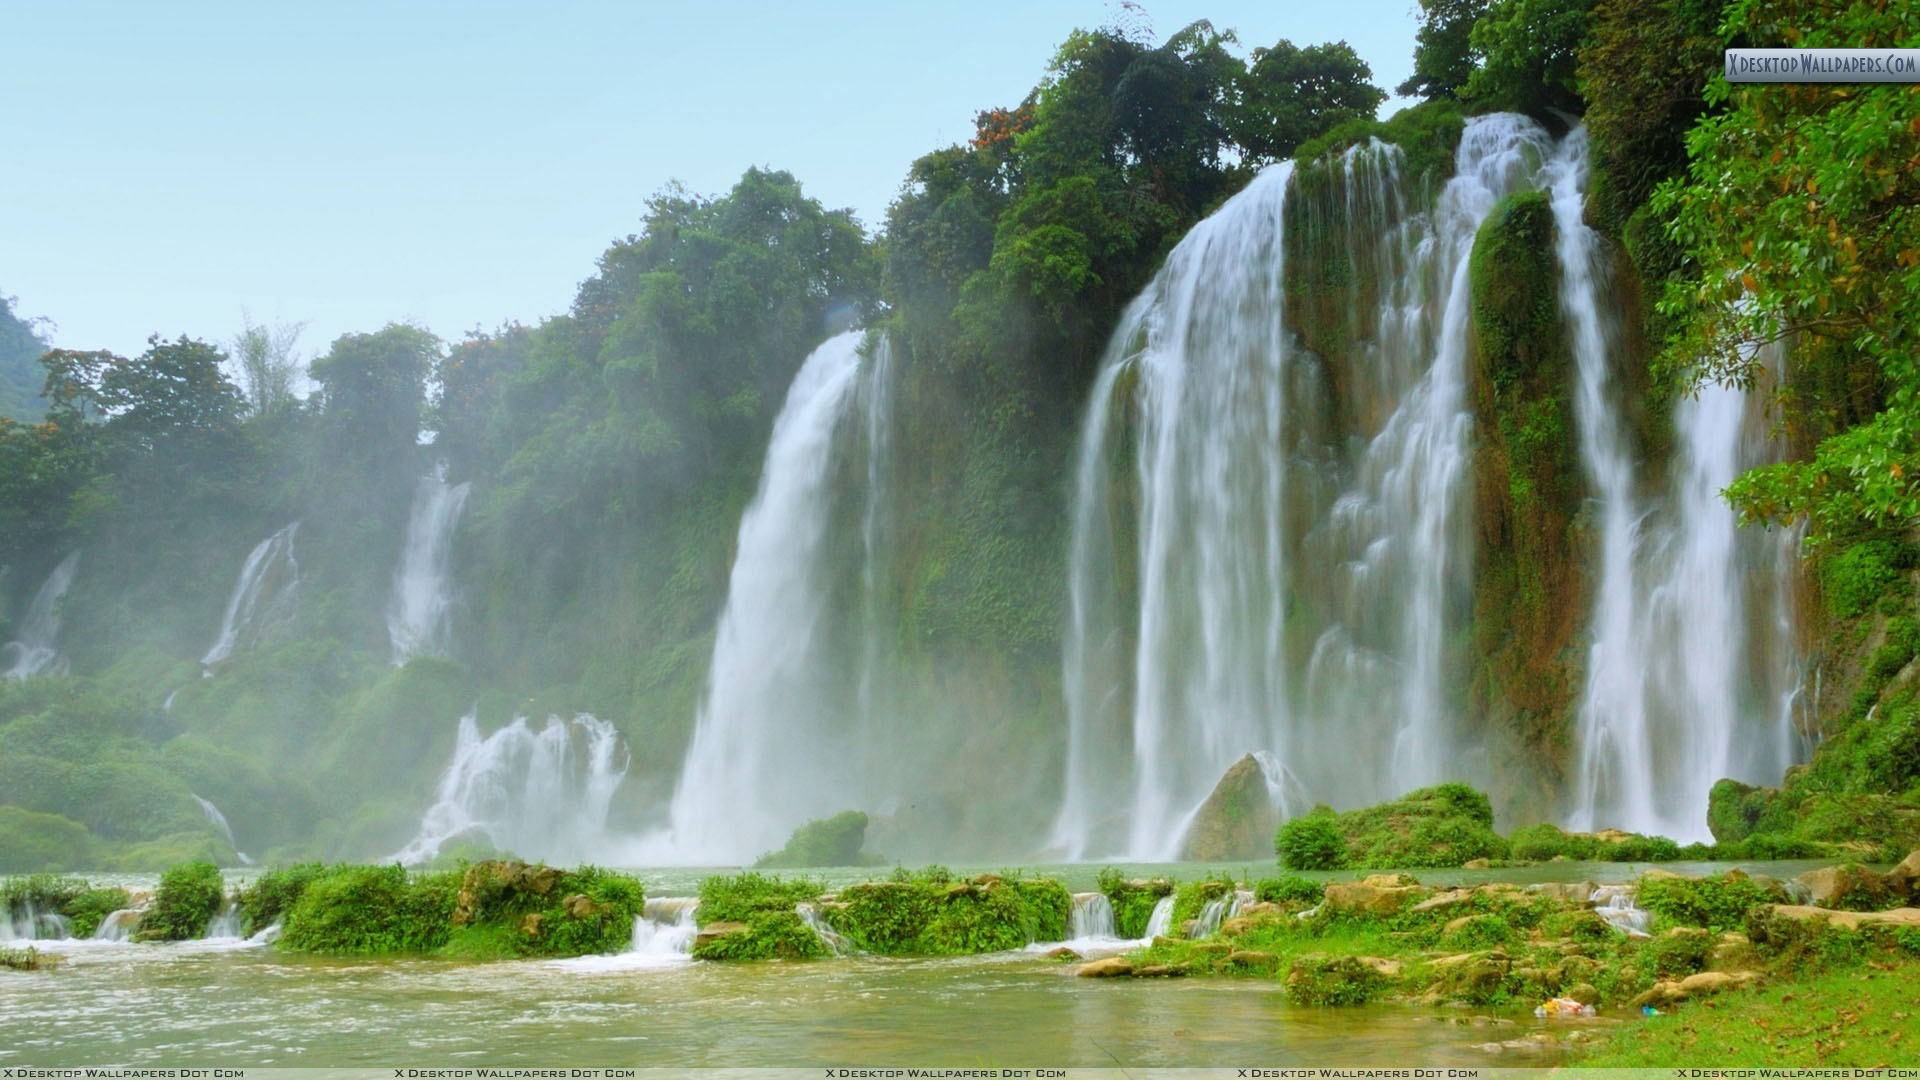 detian ban gioc falls soothing picture wallpaper